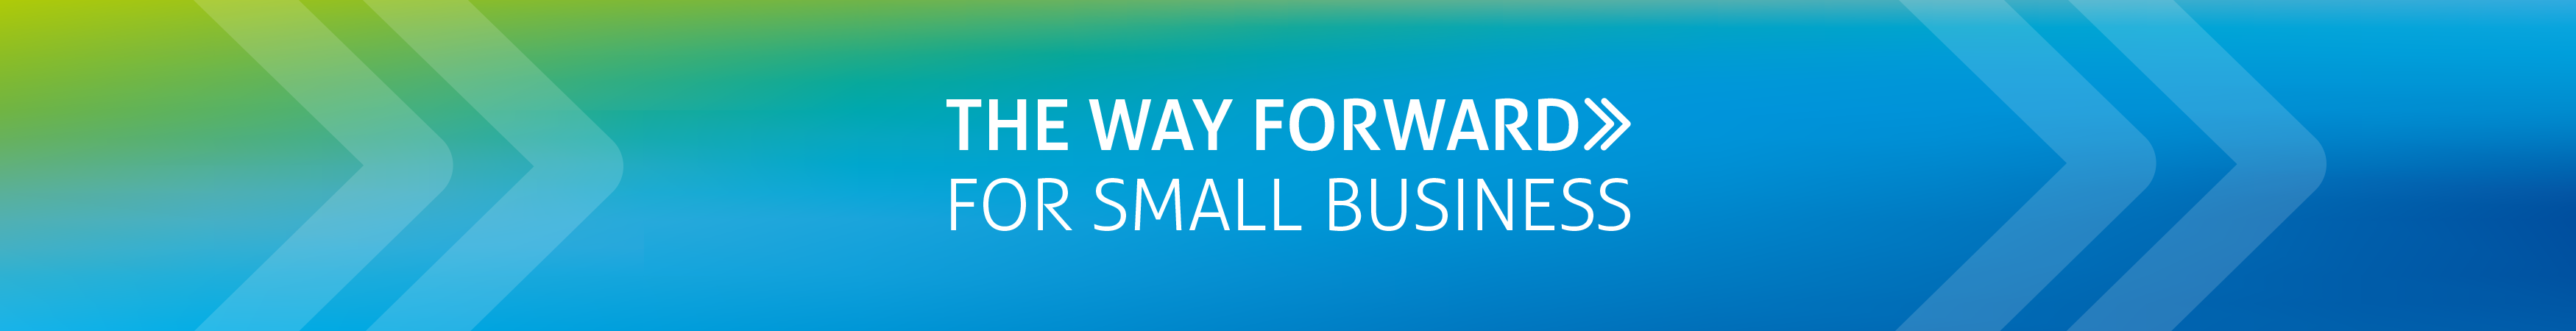 The Way Forward Newsletter